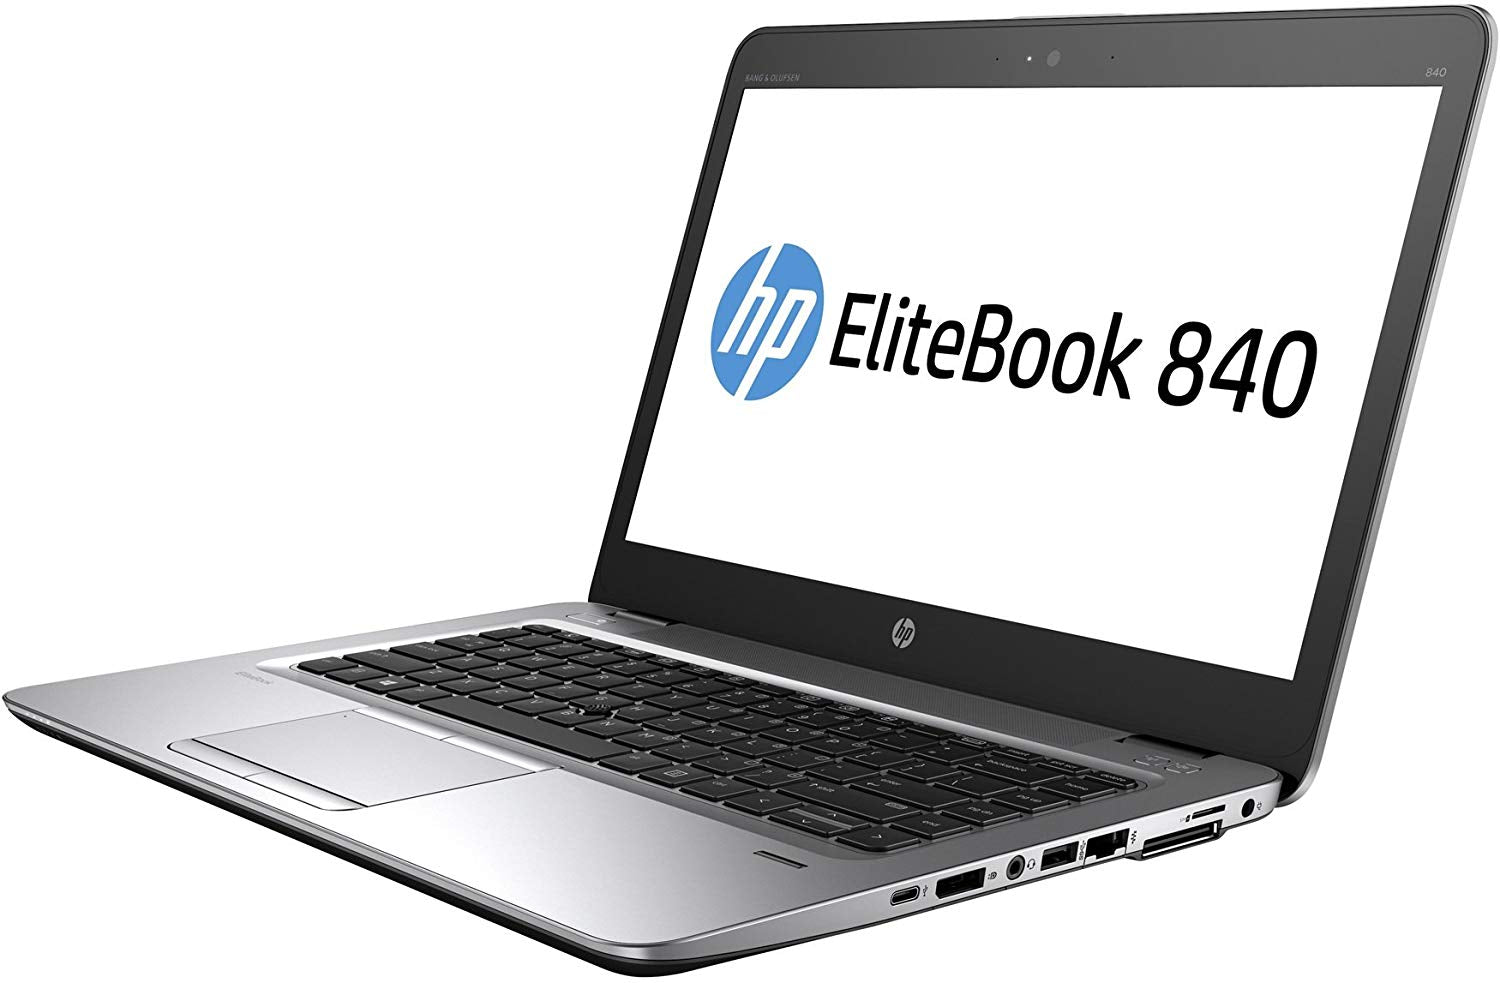 "HP Elitebook 840 G1 14"" Laptop Core i5 1.9Ghz Windows 10 Pro Refurbished"